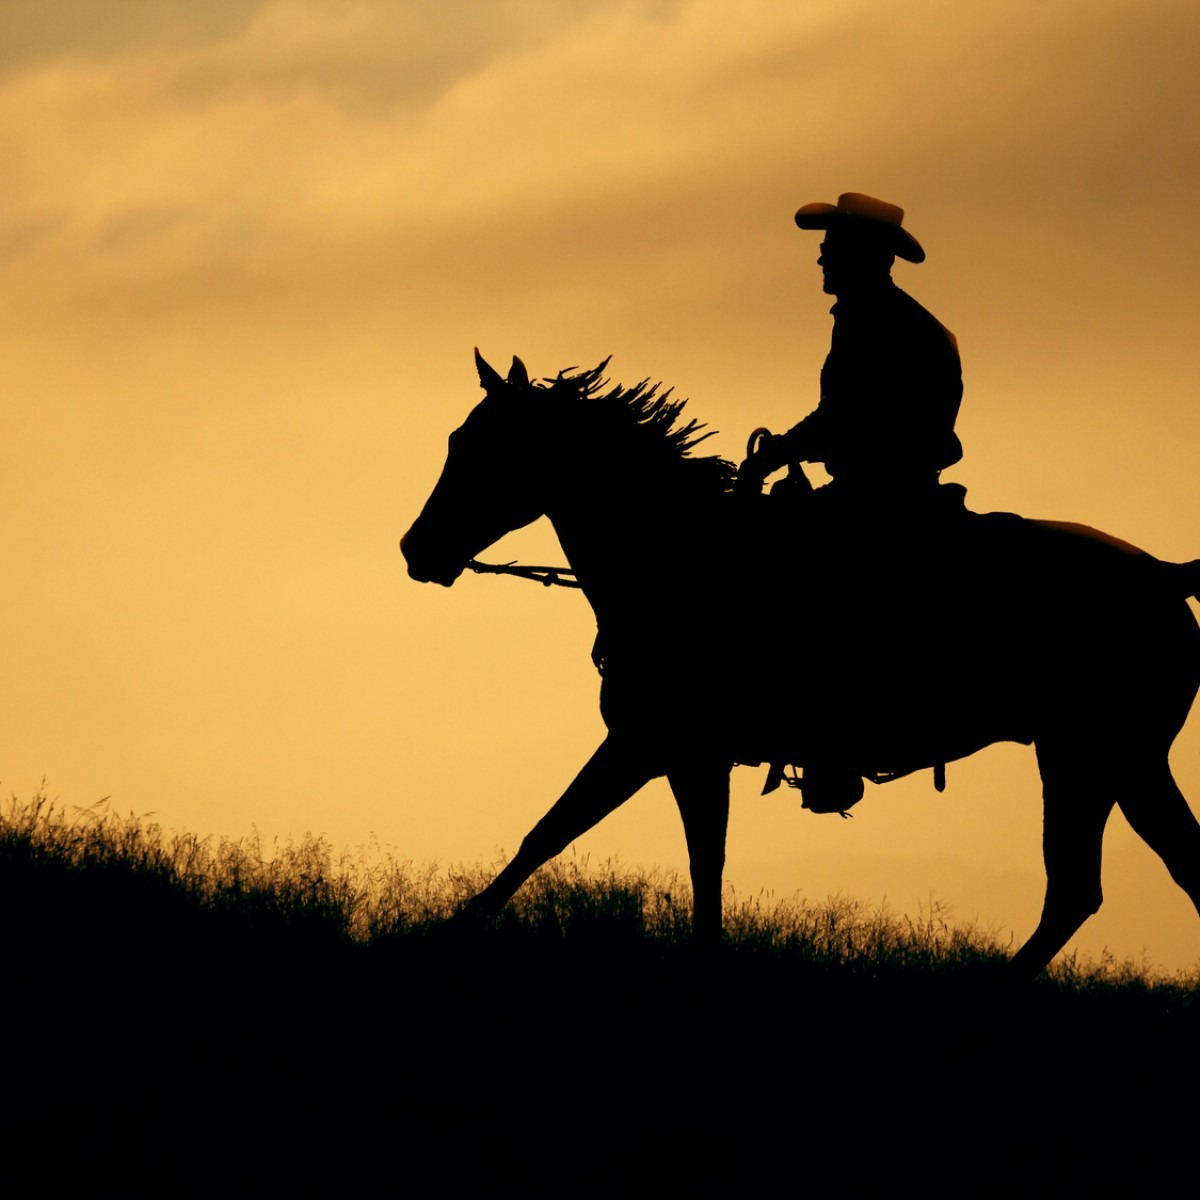 Silhouette Of A Cowboy And Horse At Sunset – Champion Funeral Home